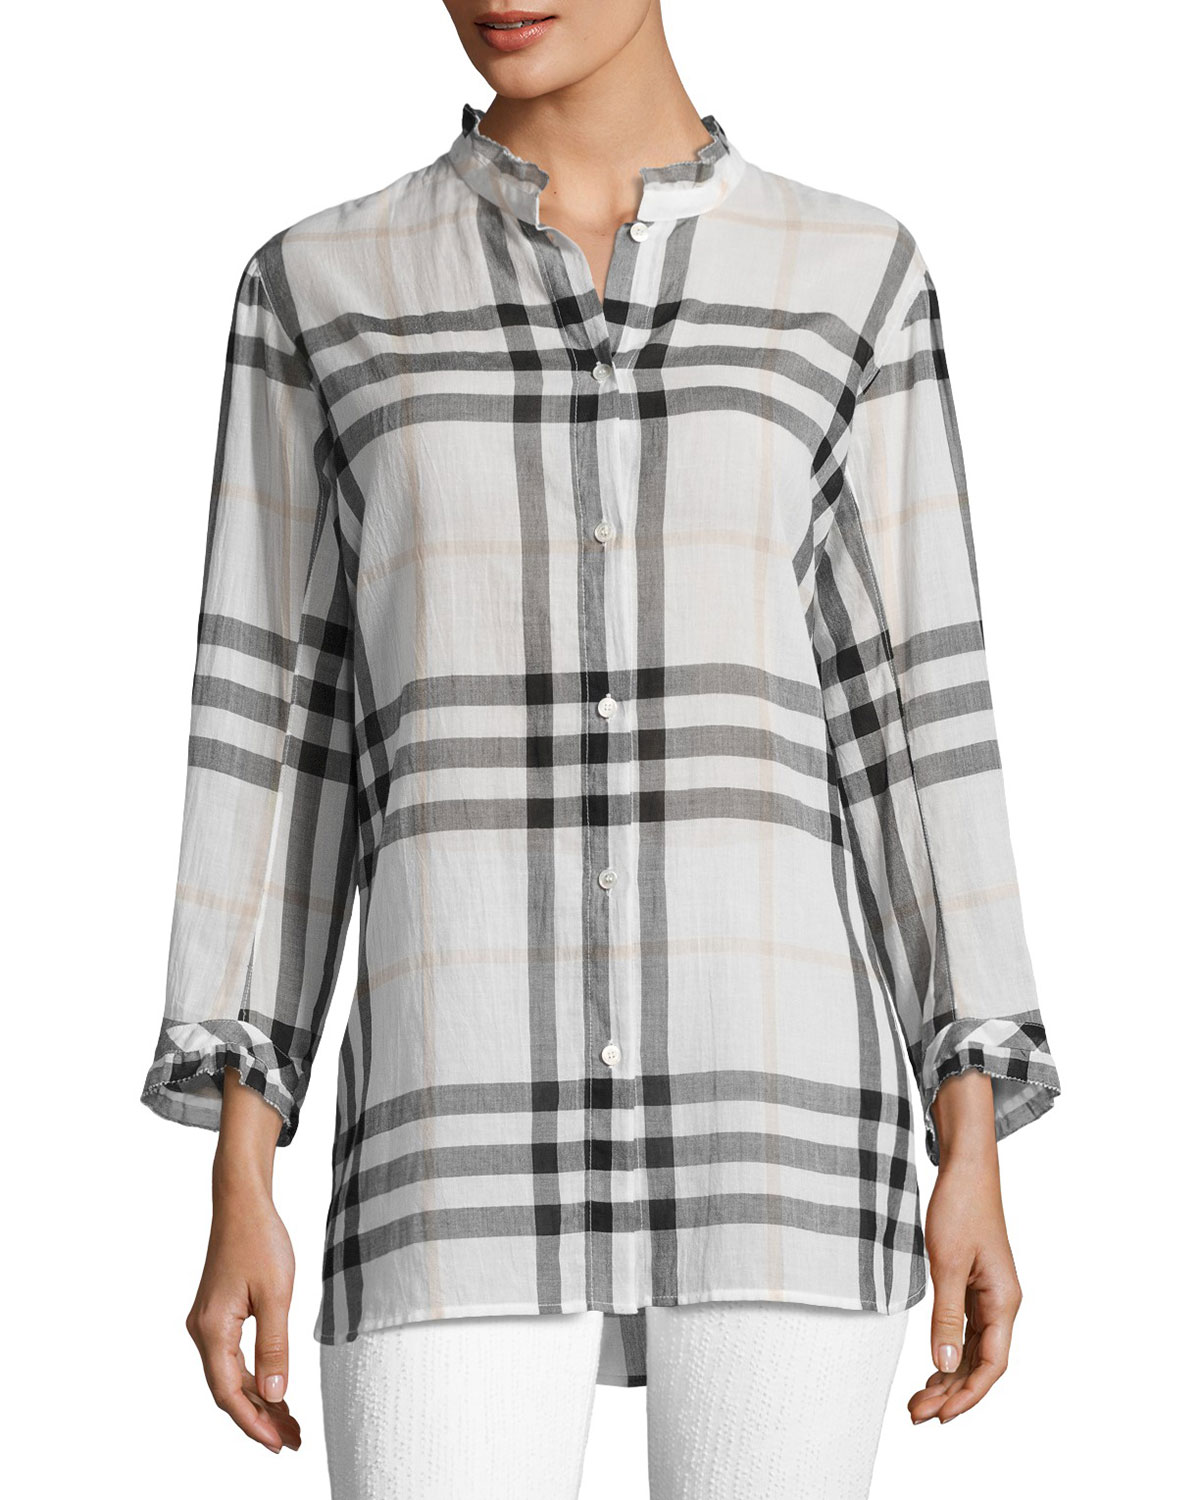 Salla Ruffle-Trim Check Shirt, White